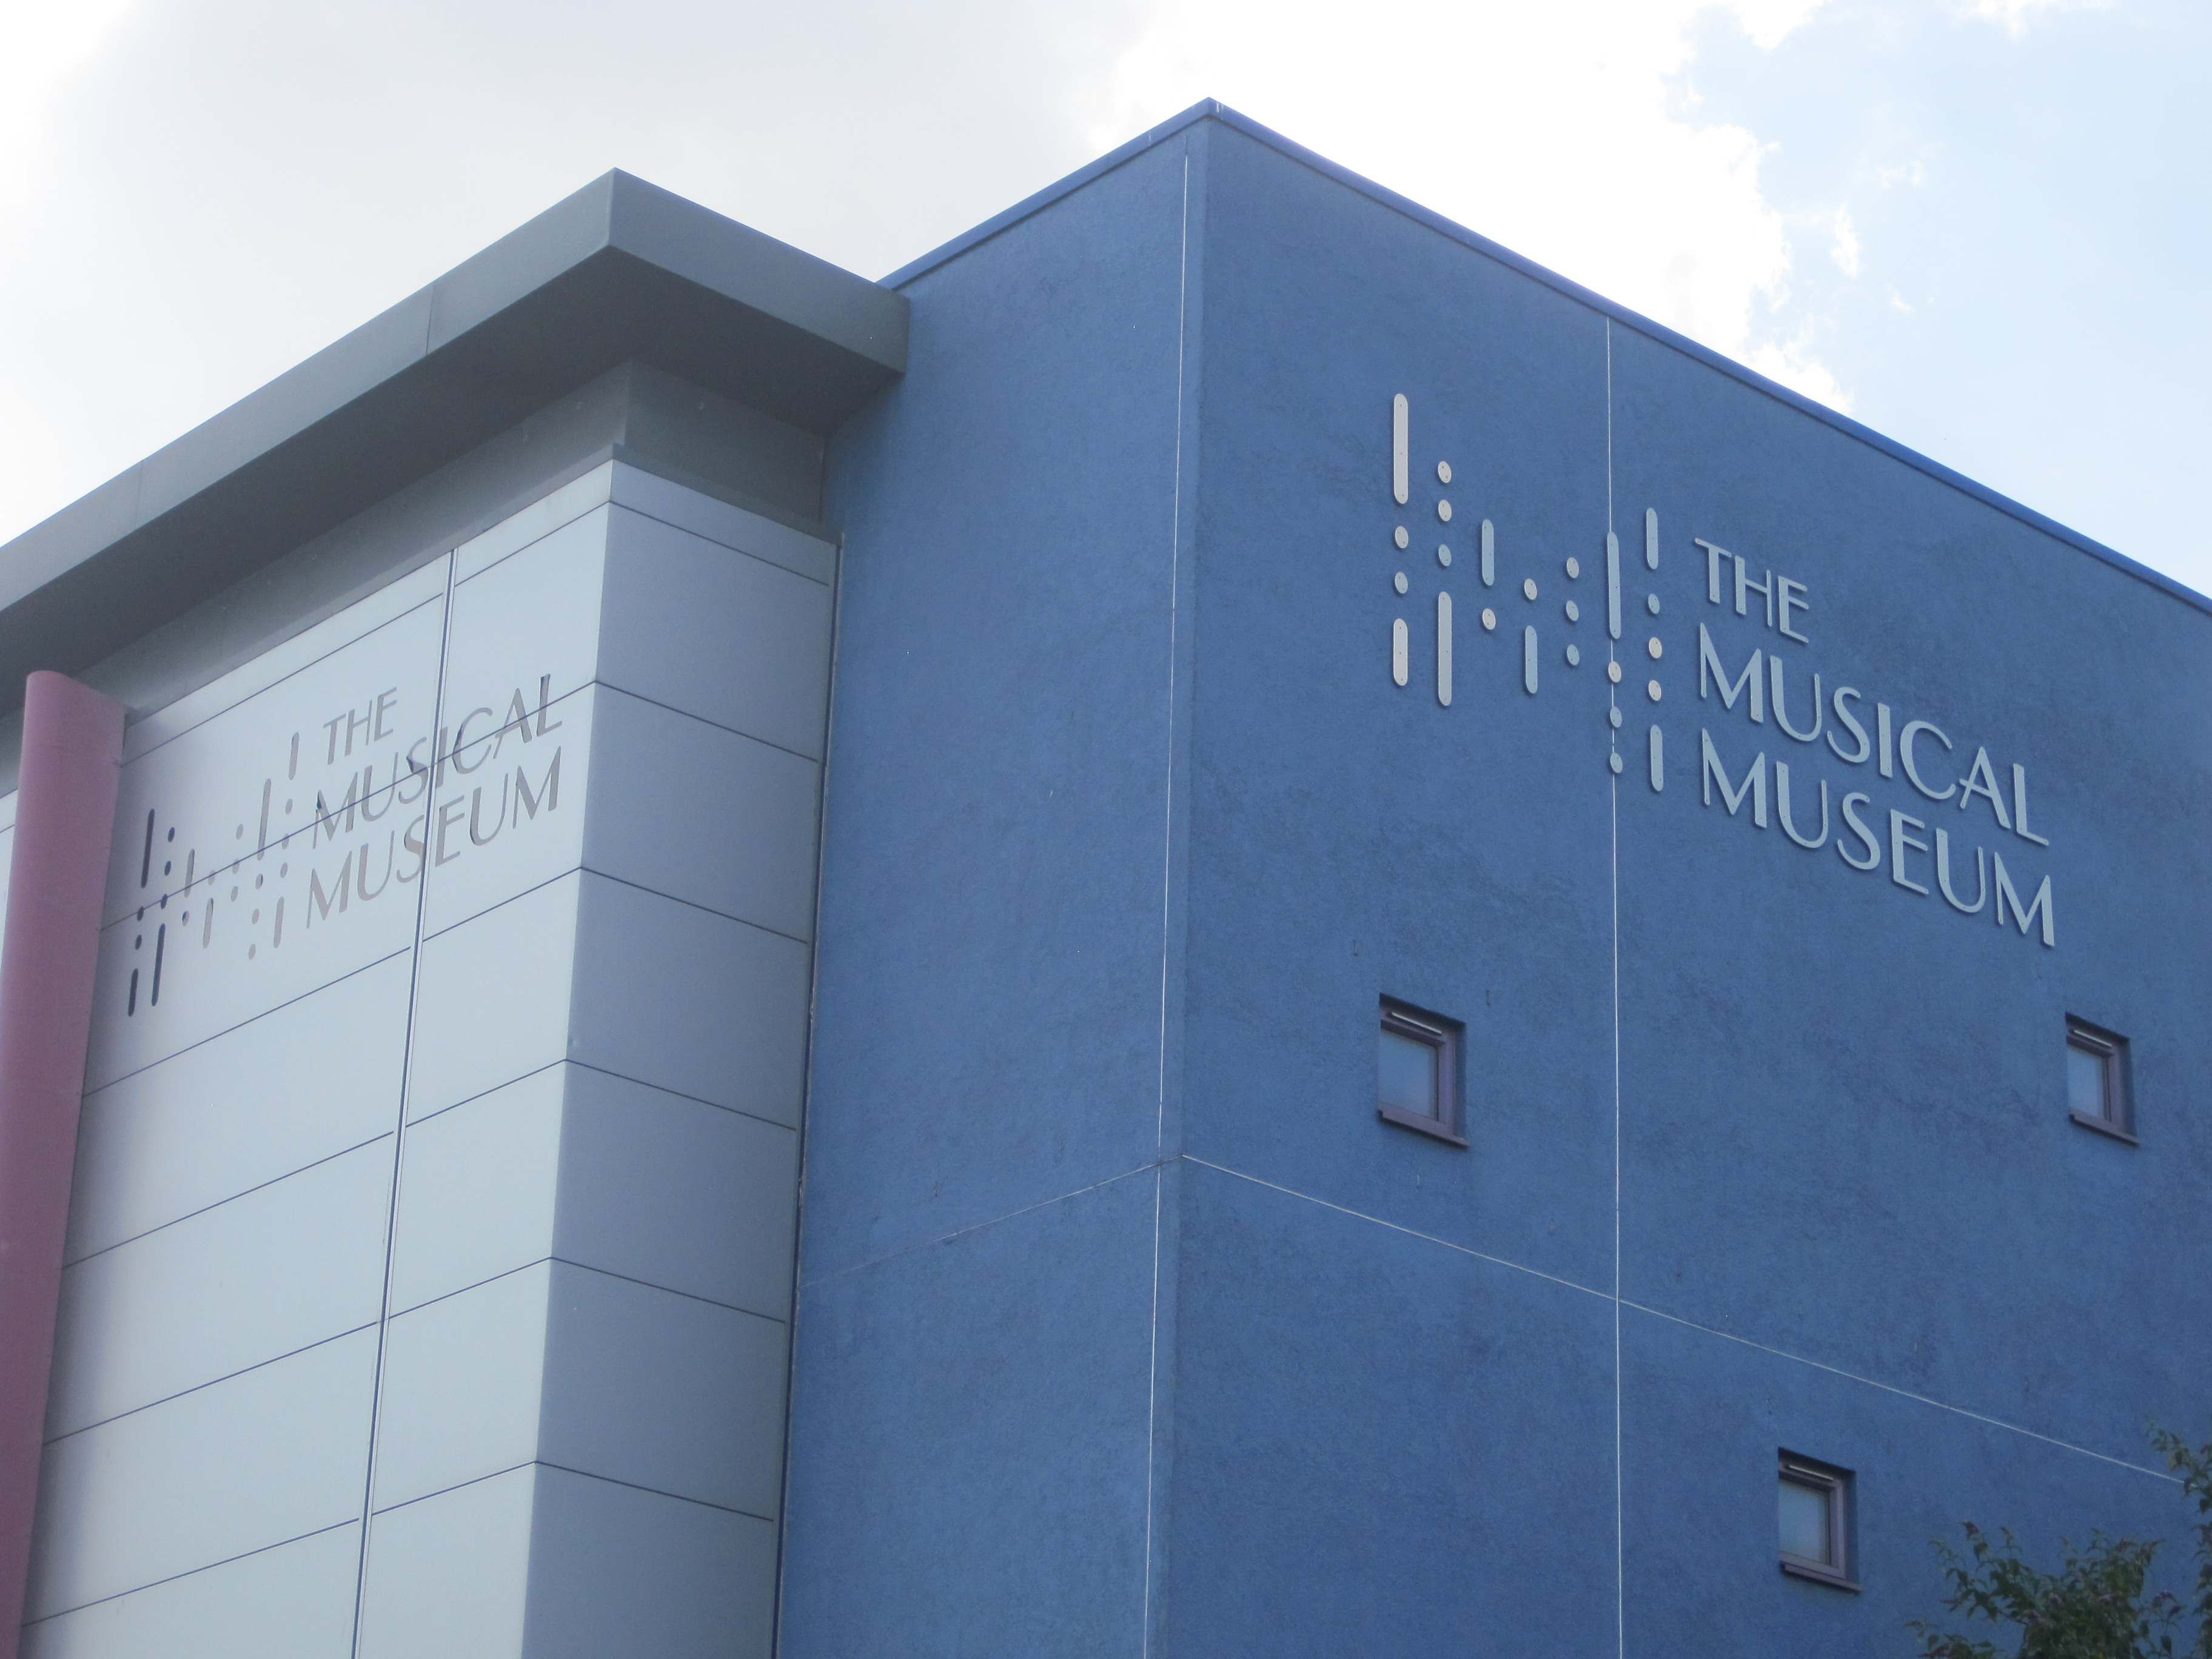 The Musical Museum - photo by Juliamaud